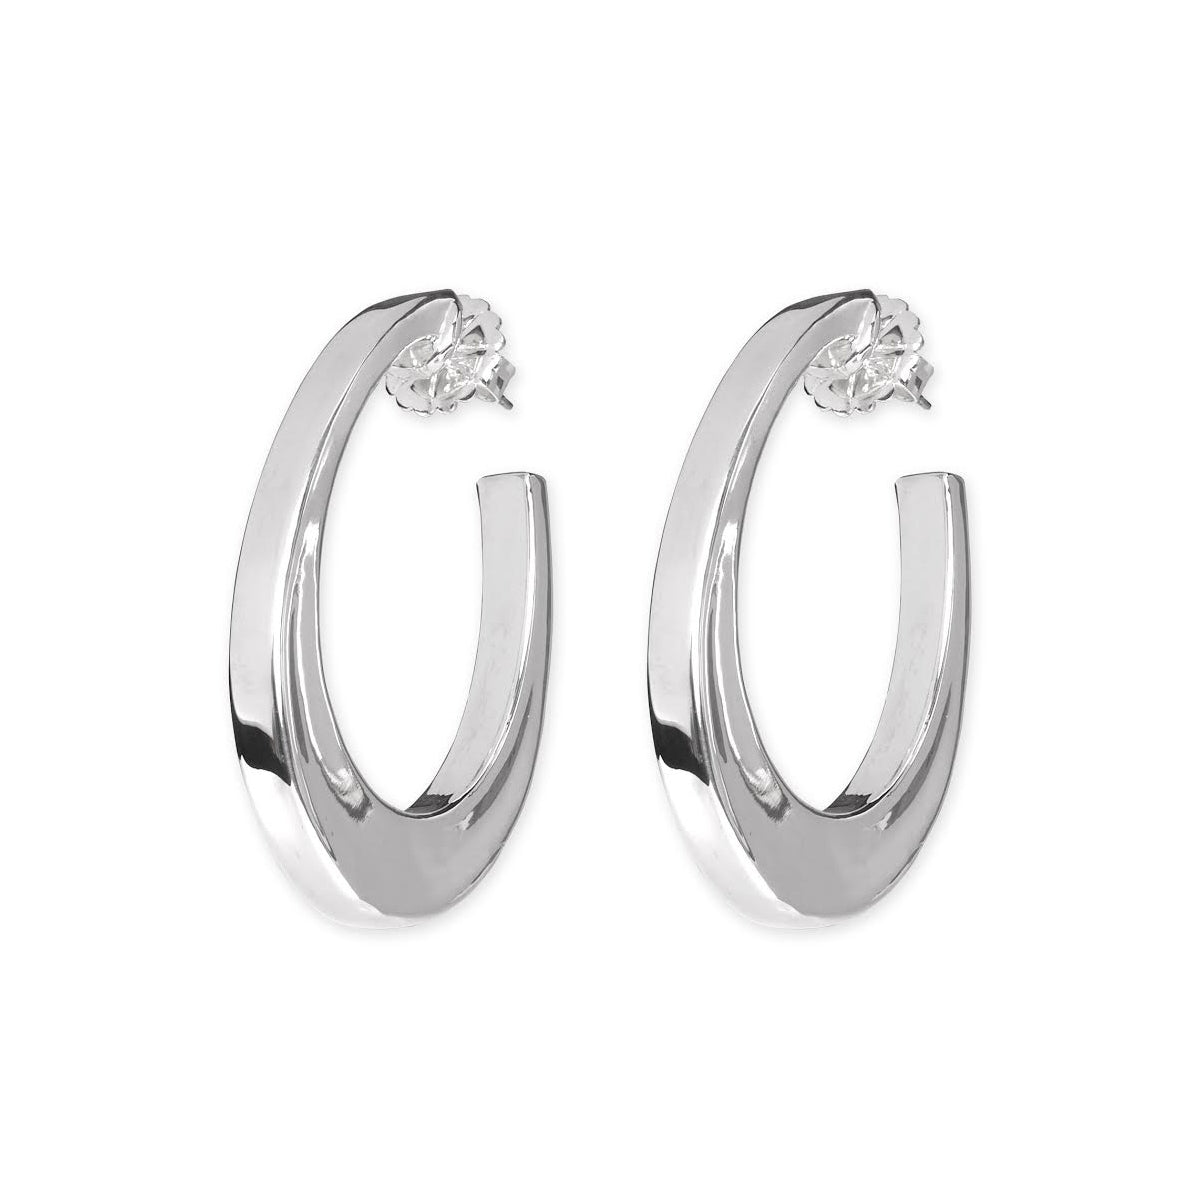 ddcf766b2 Medium Square Tube Oval Hoop Earrings, Sterling Silver | Silver Jewelry  Stores Long Island - Fortunoff Jewelry – Fortunoff Fine Jewelry